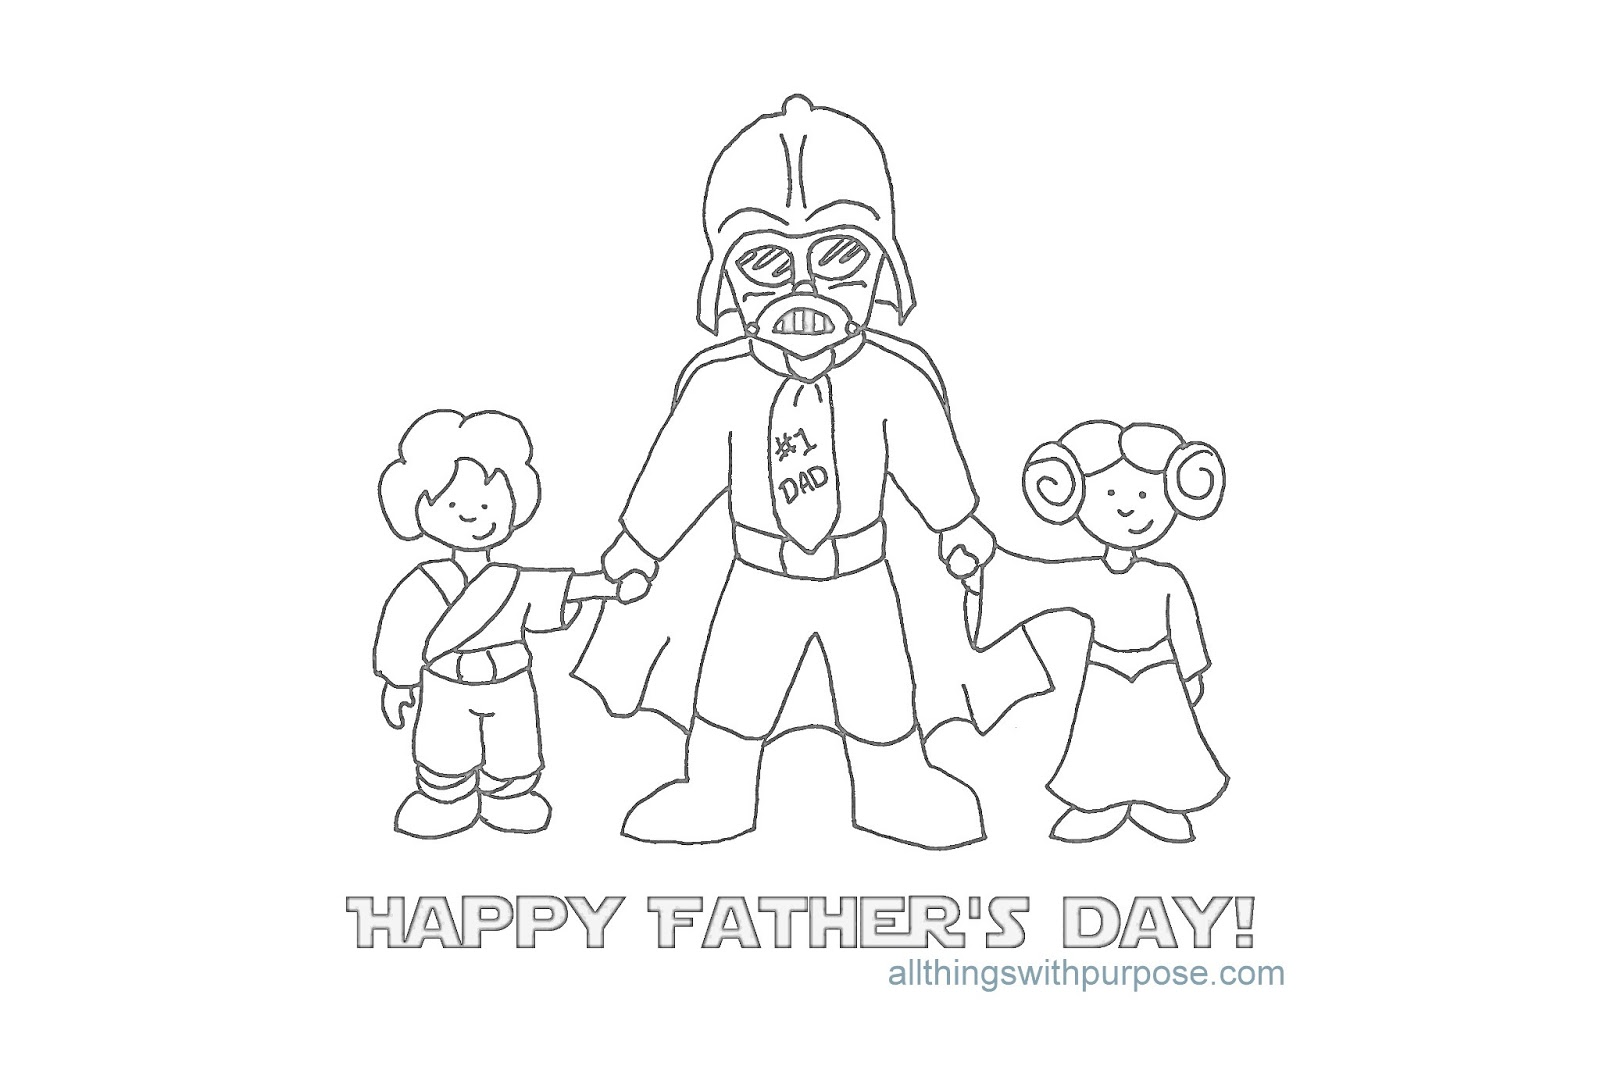 Fun Fathers Day Printable Images | All Things with Purpose